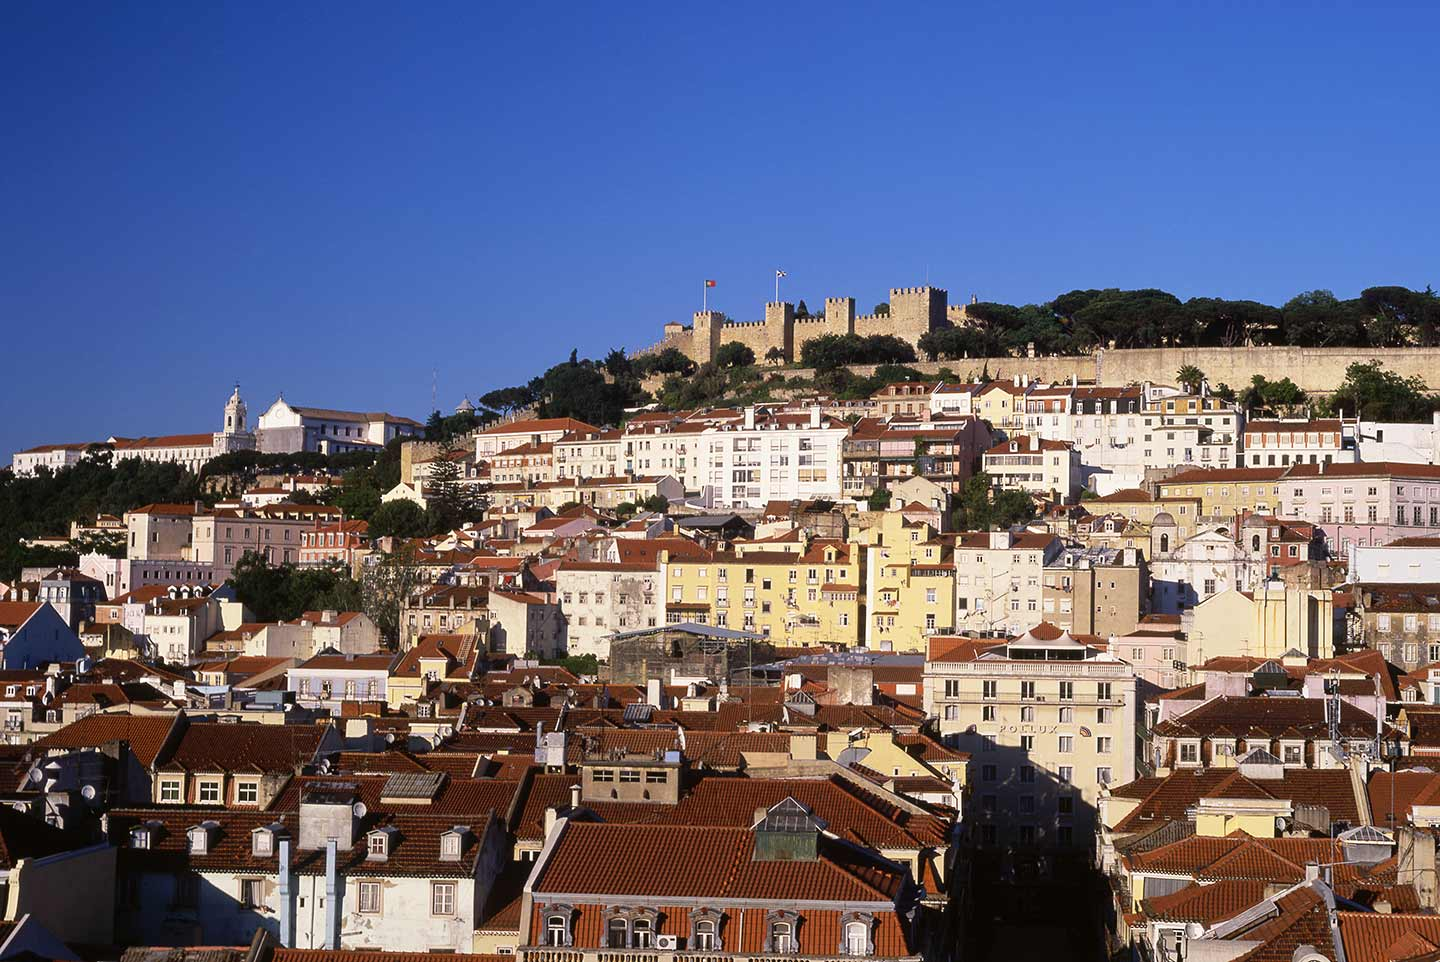 Image of the Baixa and Castelo de São Jorge from the Miradouro de Santa Justa Lisbon